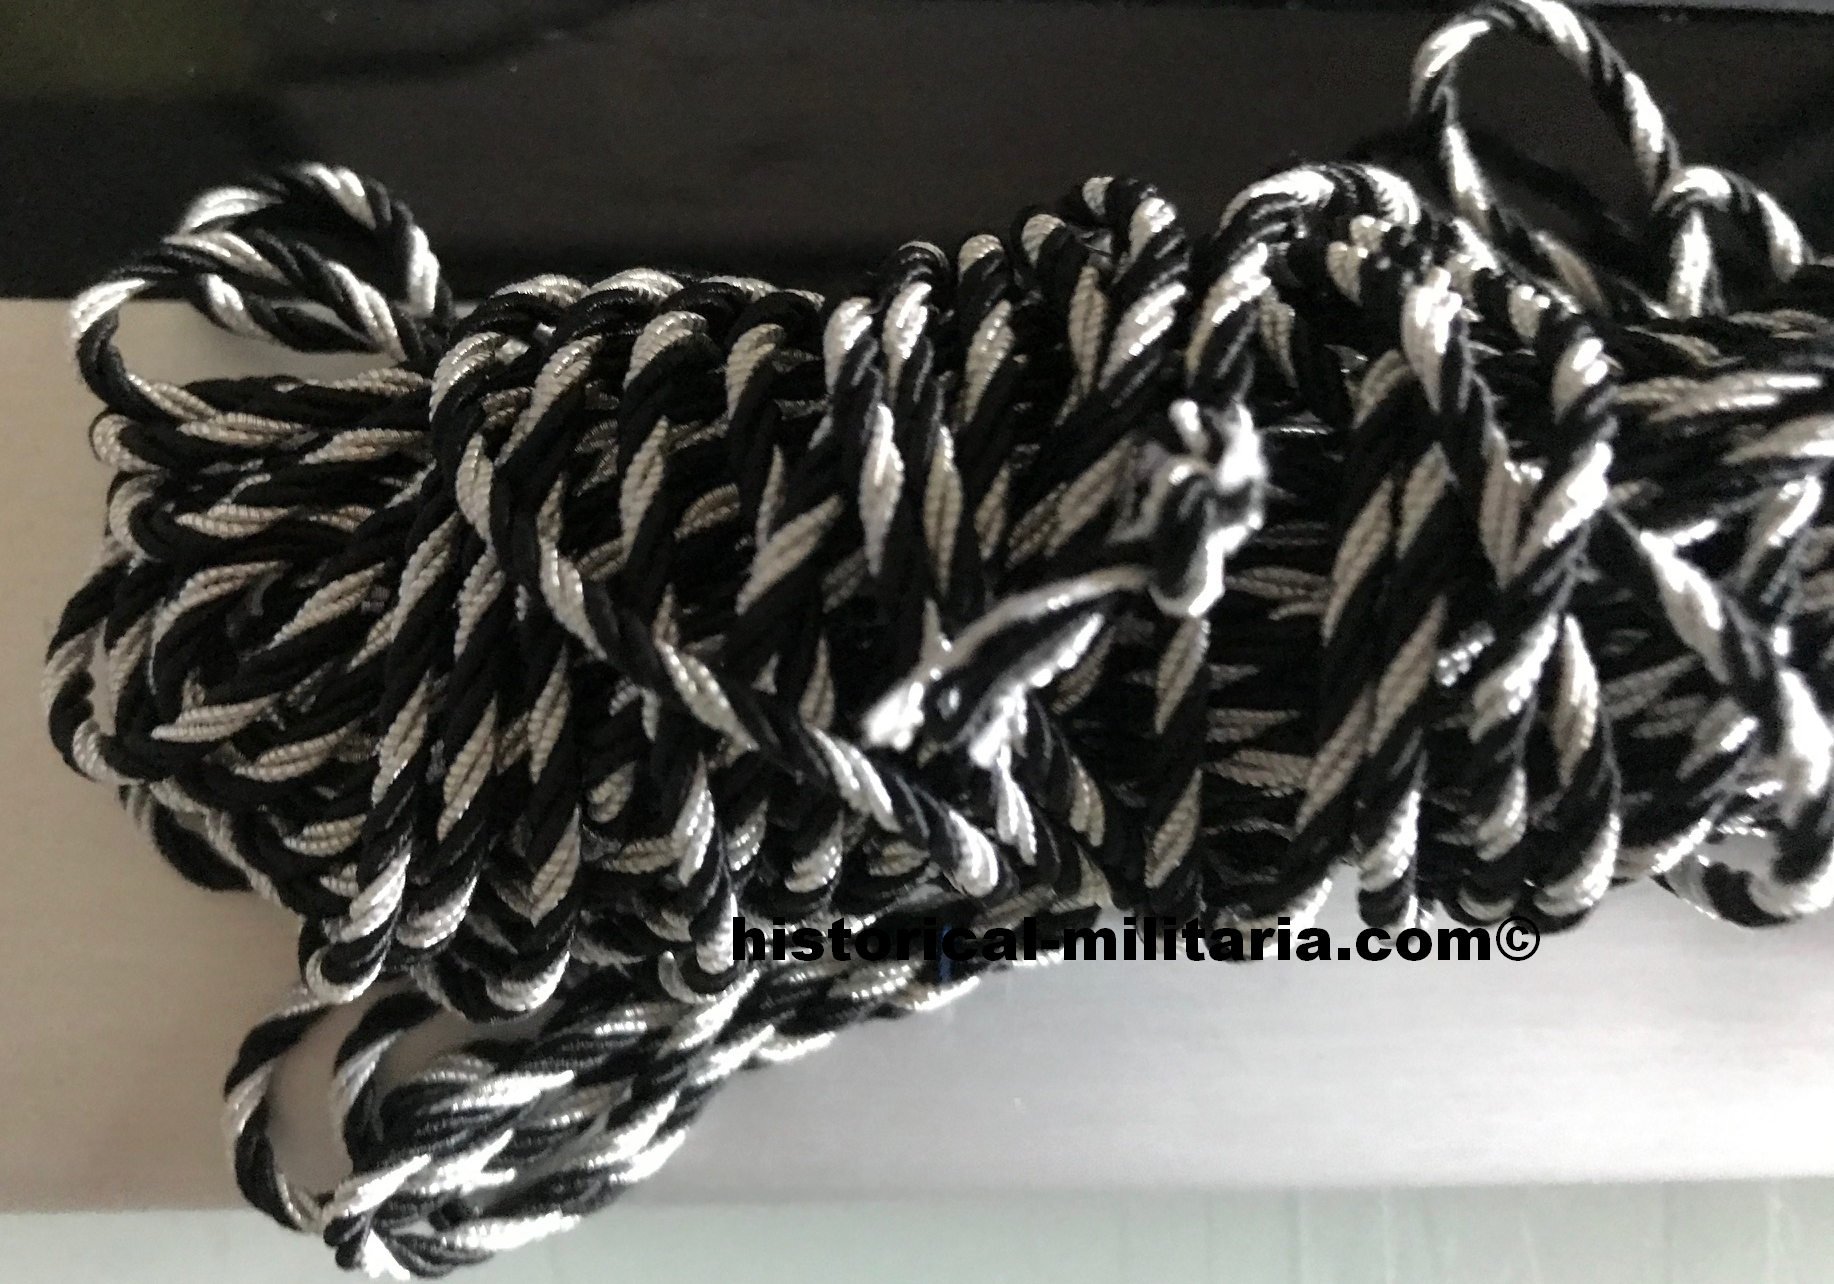 Twisted piping cord silver black for tunic or collar 2.0mm - Uniformkordel schwarz silberfarben gedreht 2mm - 1 Meter Länge